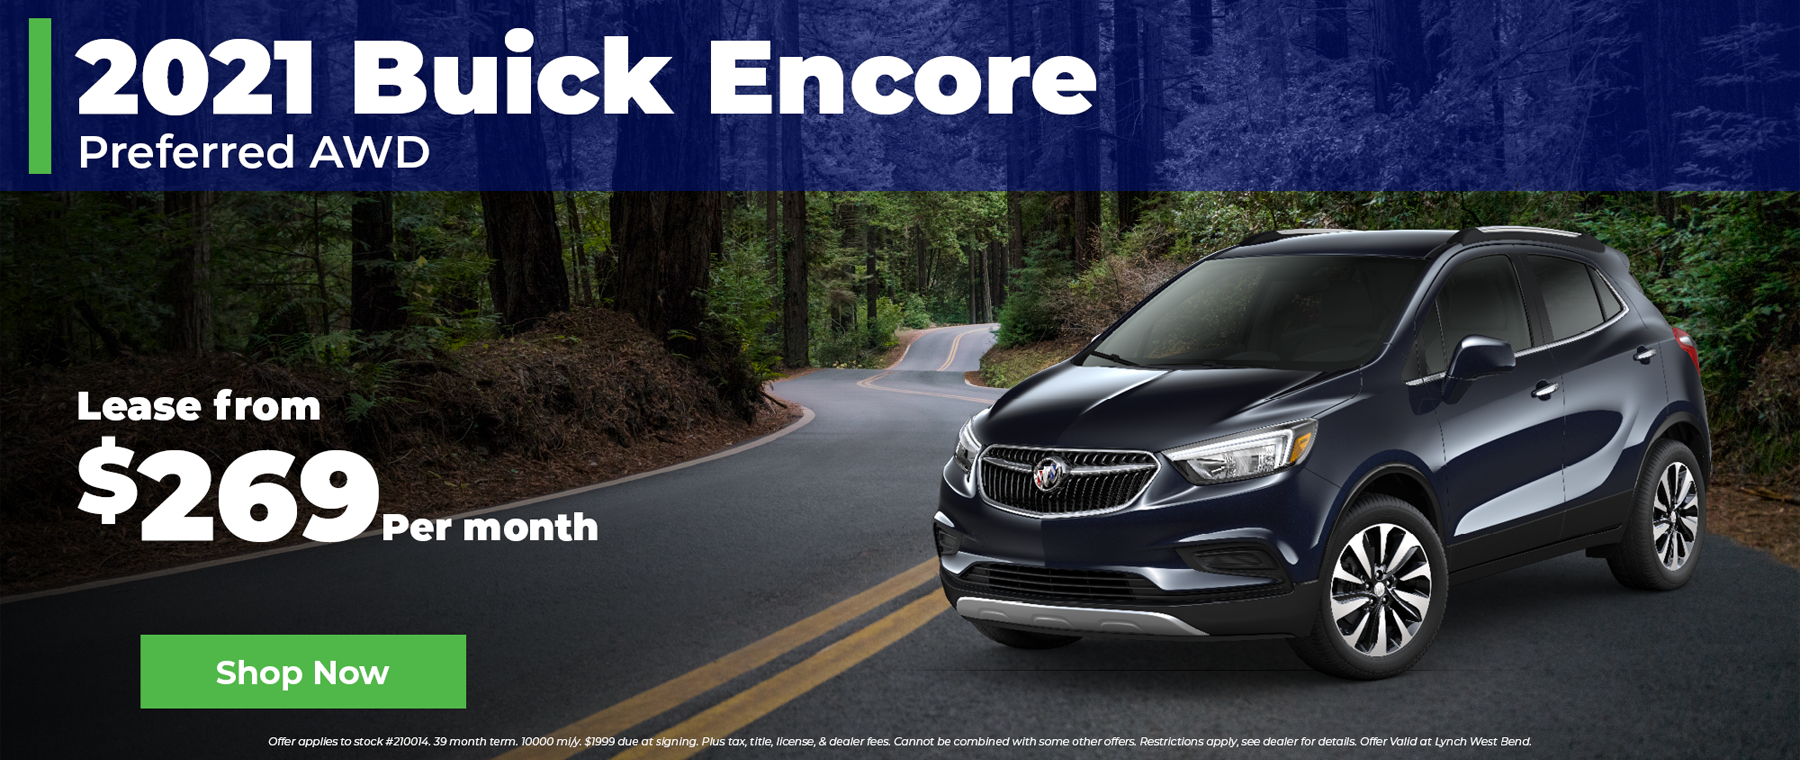 2021 Buick Encore $269 per month in West Bend Wisconsin